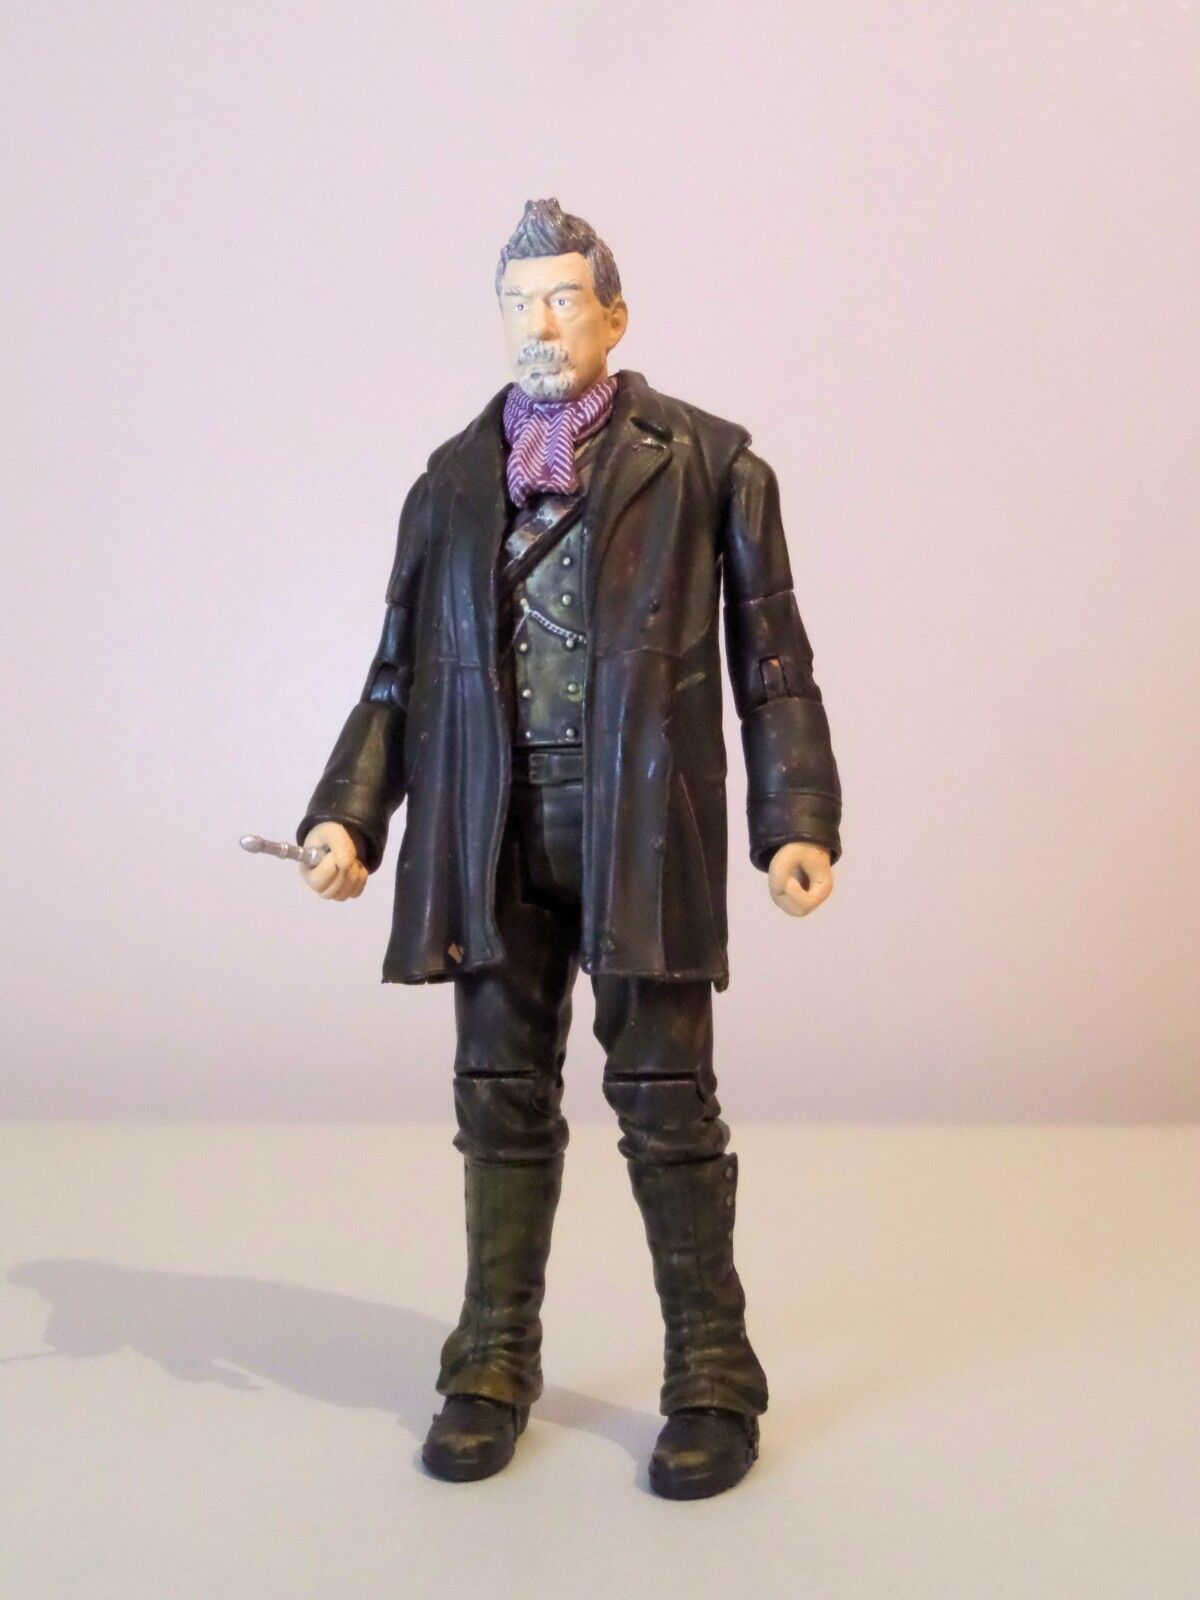 Doctor Who - The War Doctor from the 13 Doctors set (loose figure)